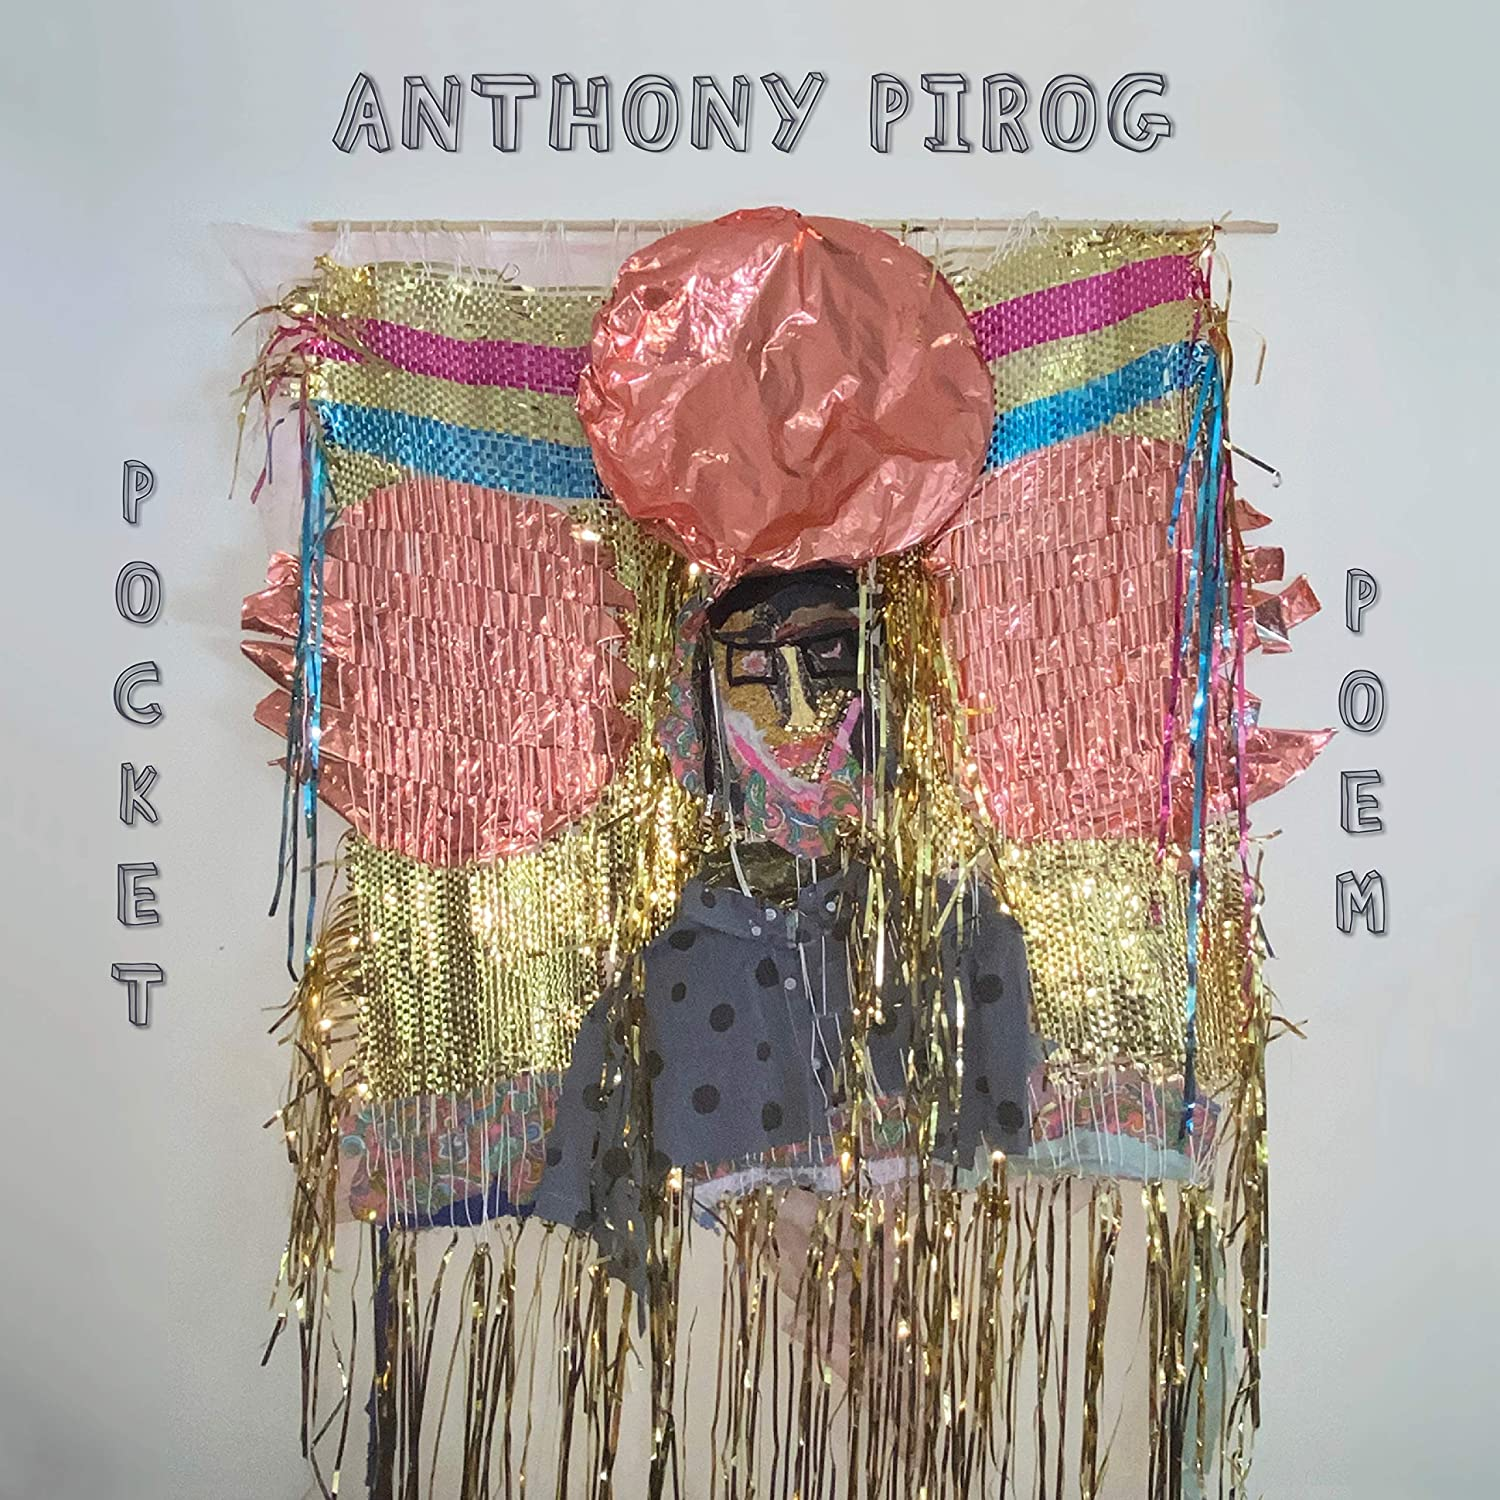 ANTHONY PIROG - Pocket Poem cover